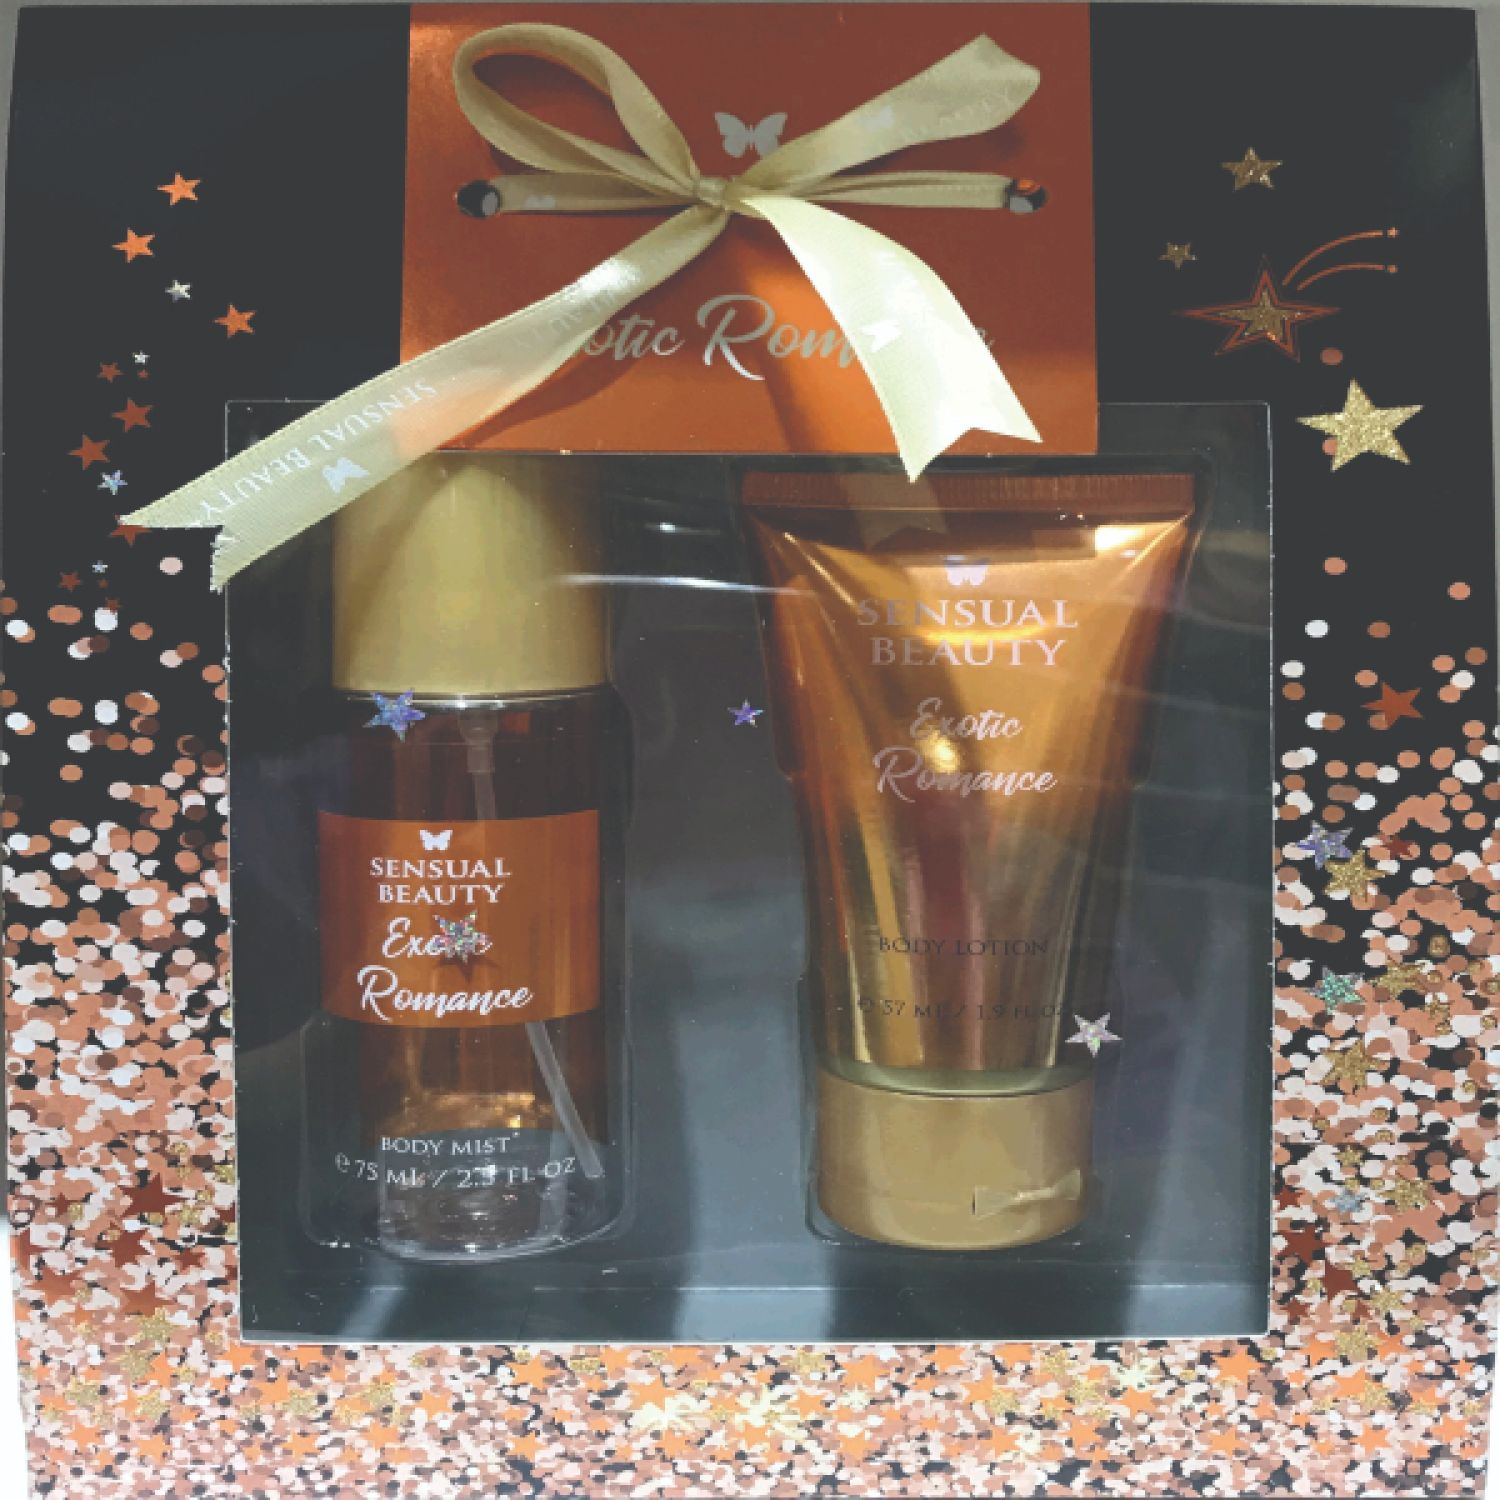 SENSUAL BEAUTY Set Bm75ml+bl57ml Exotic Romance Naranja Mujeres